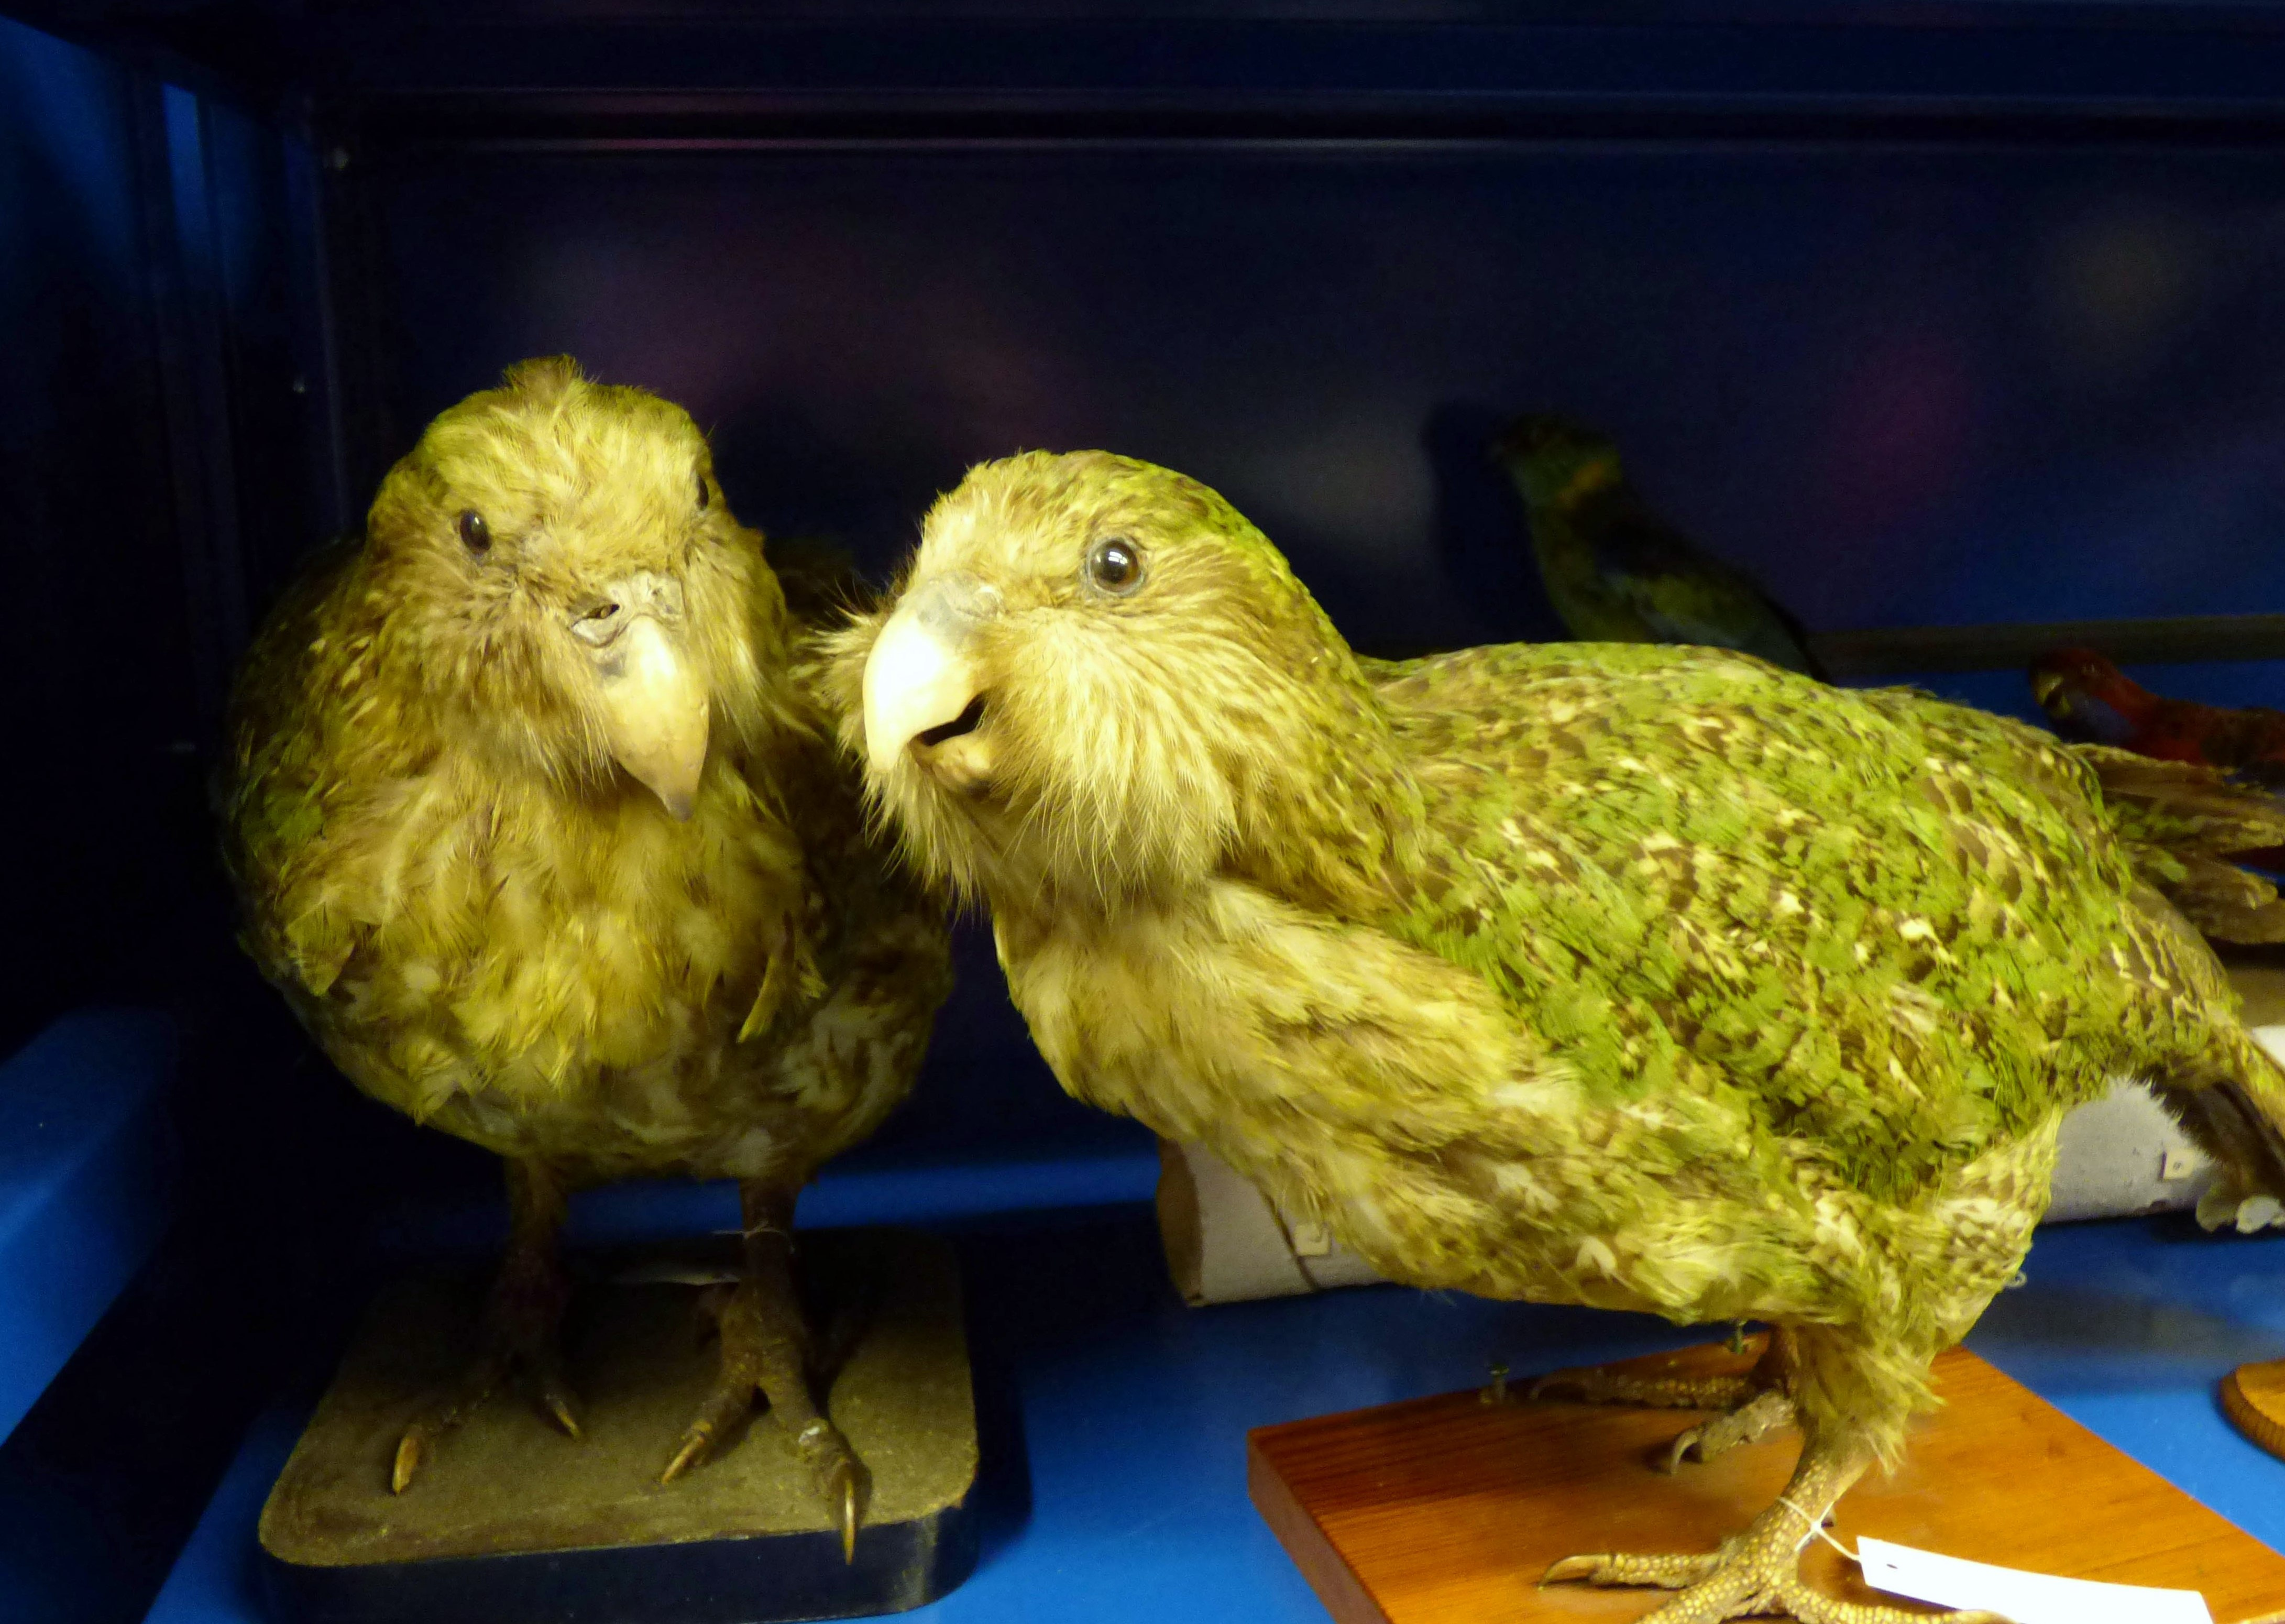 Taxidermy Kakapo, MEG behind the scenes tour at Liverpool World Museum, 2018